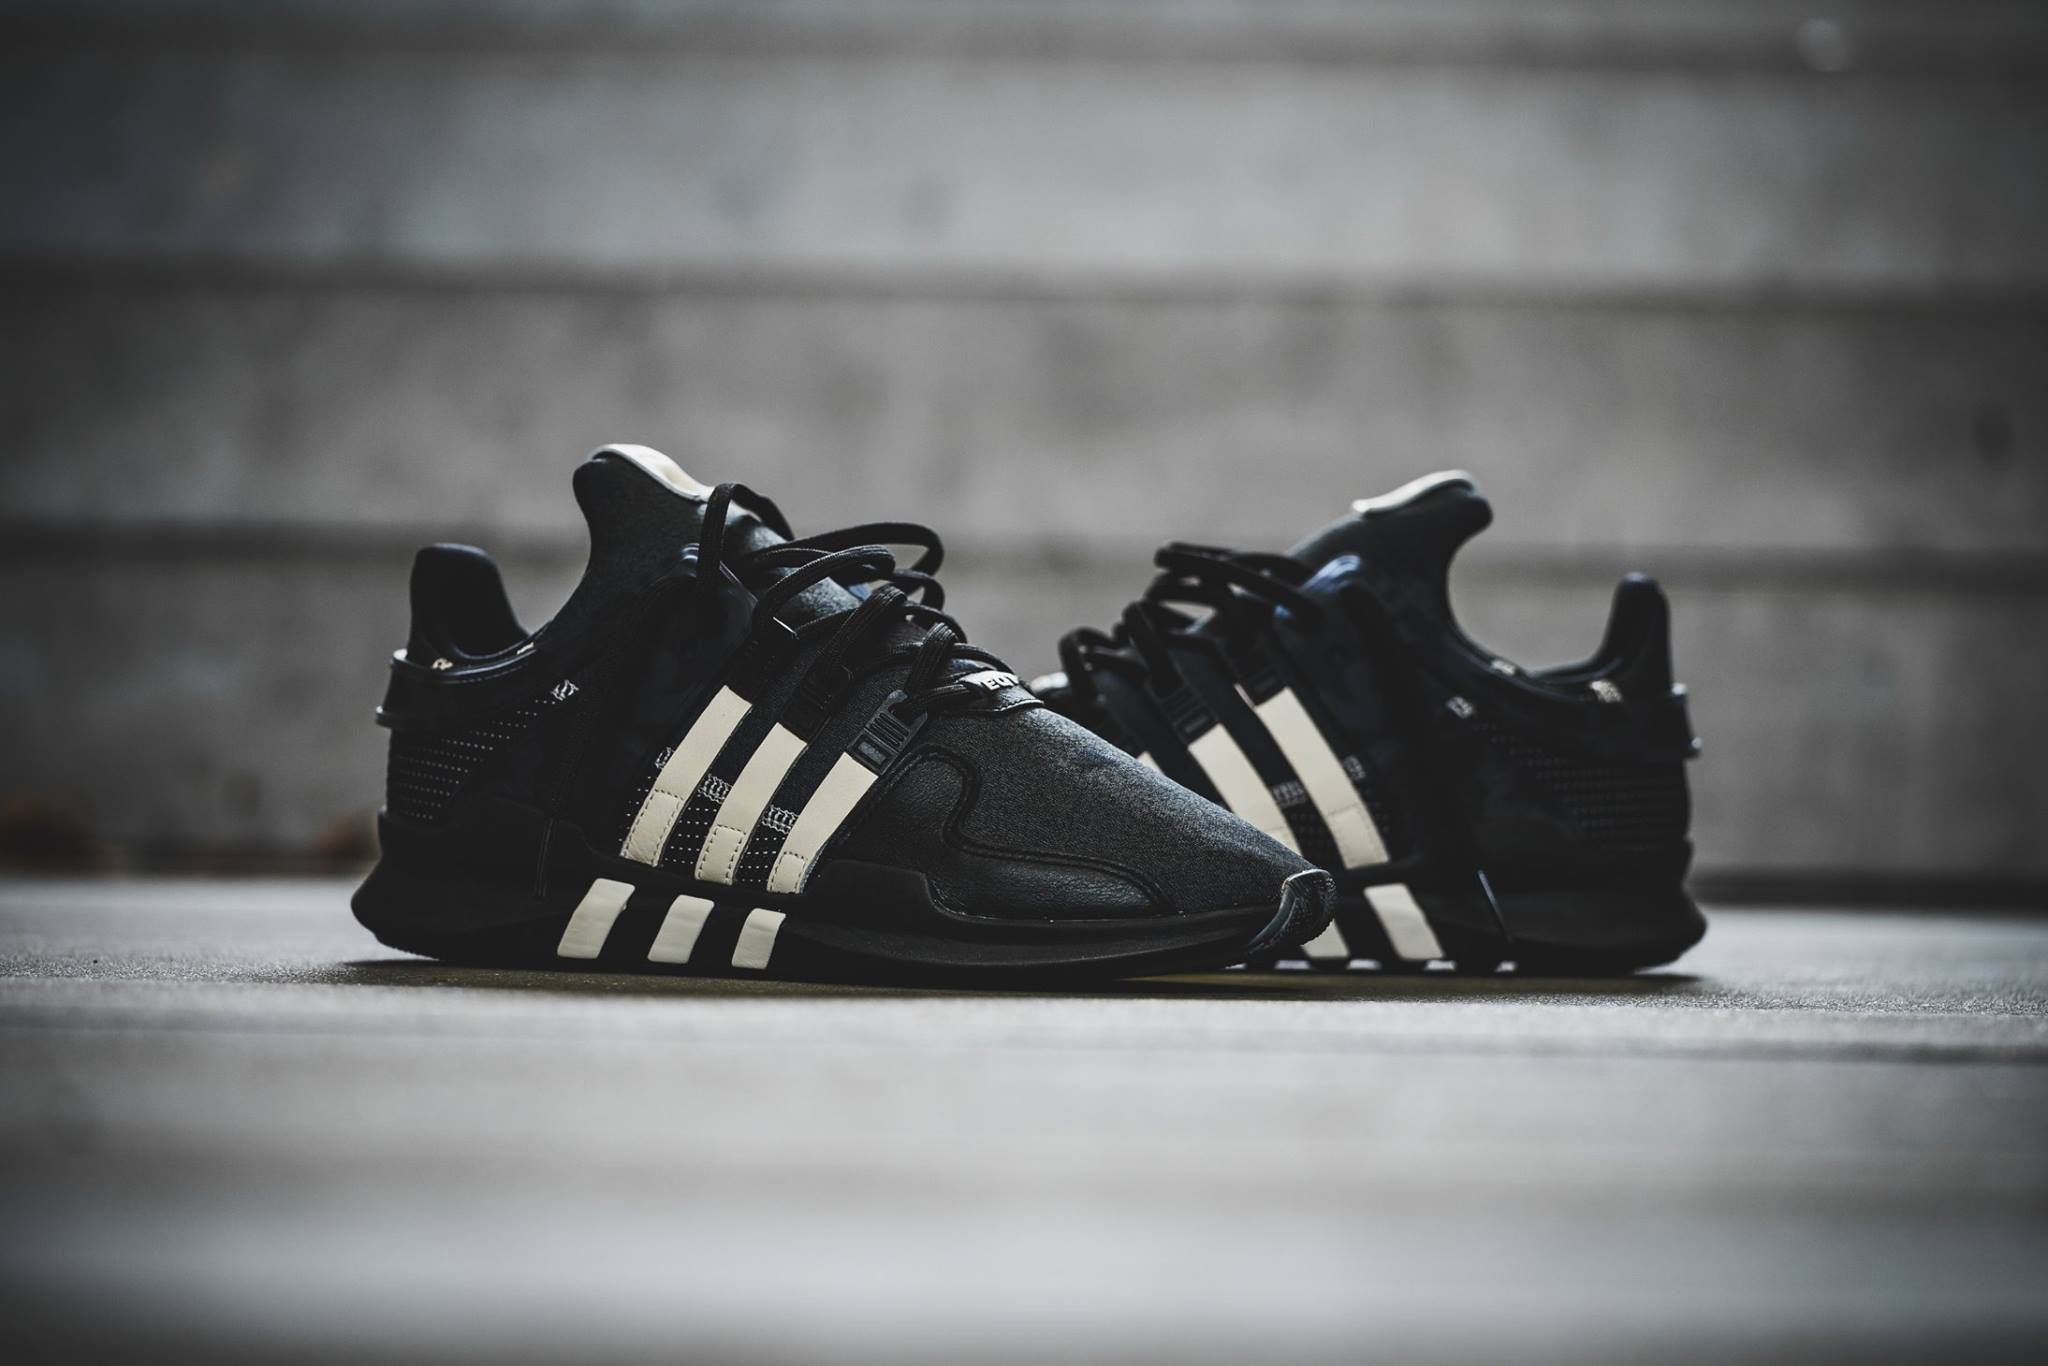 Adidas Equipment Advanced Black Green On feet Video at Exclucity